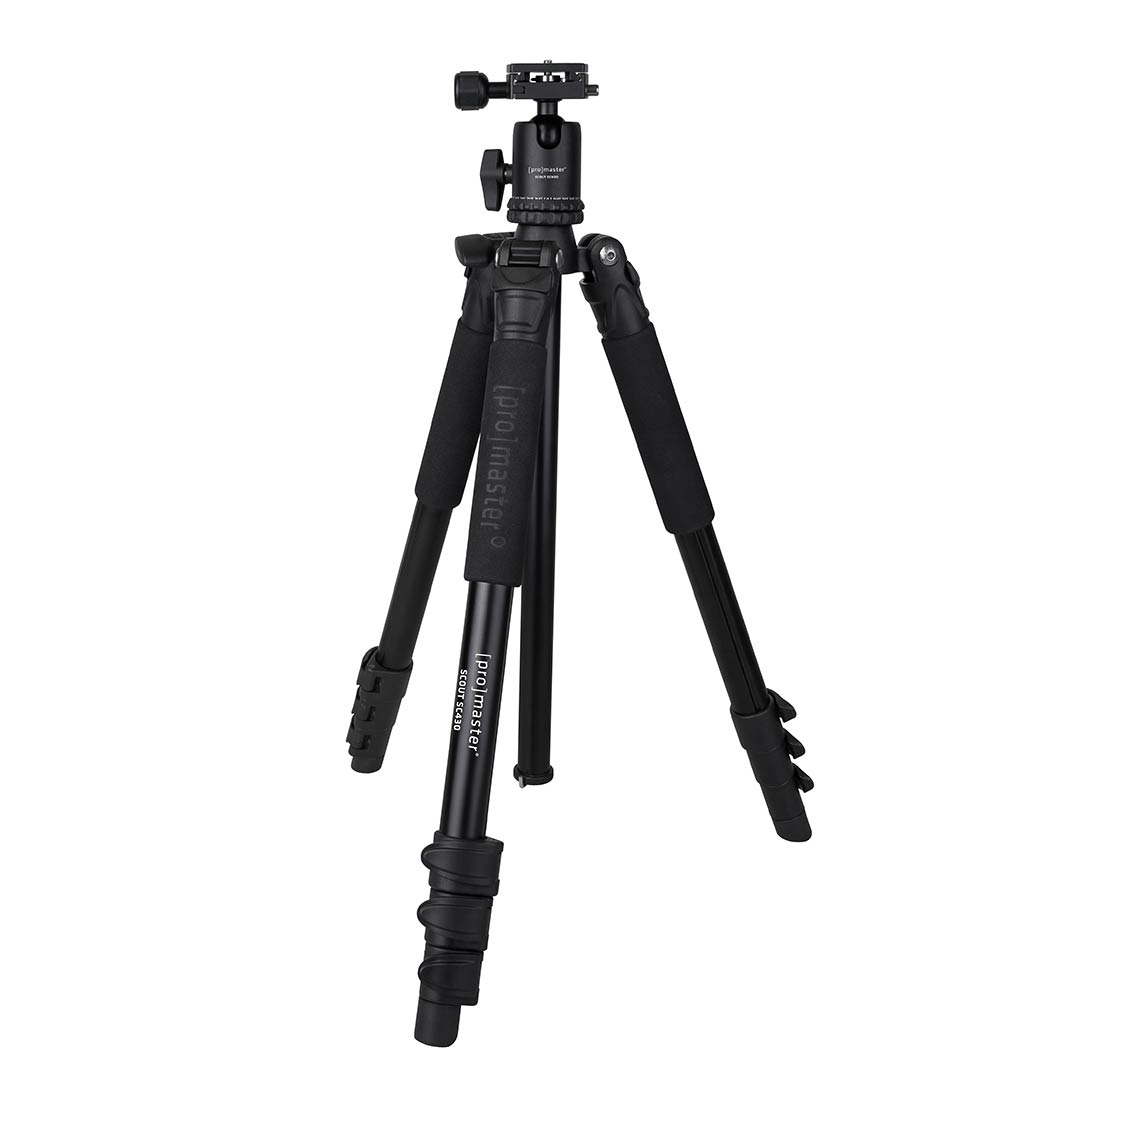 Promaster Scout SC430K Tripod with Ball Head